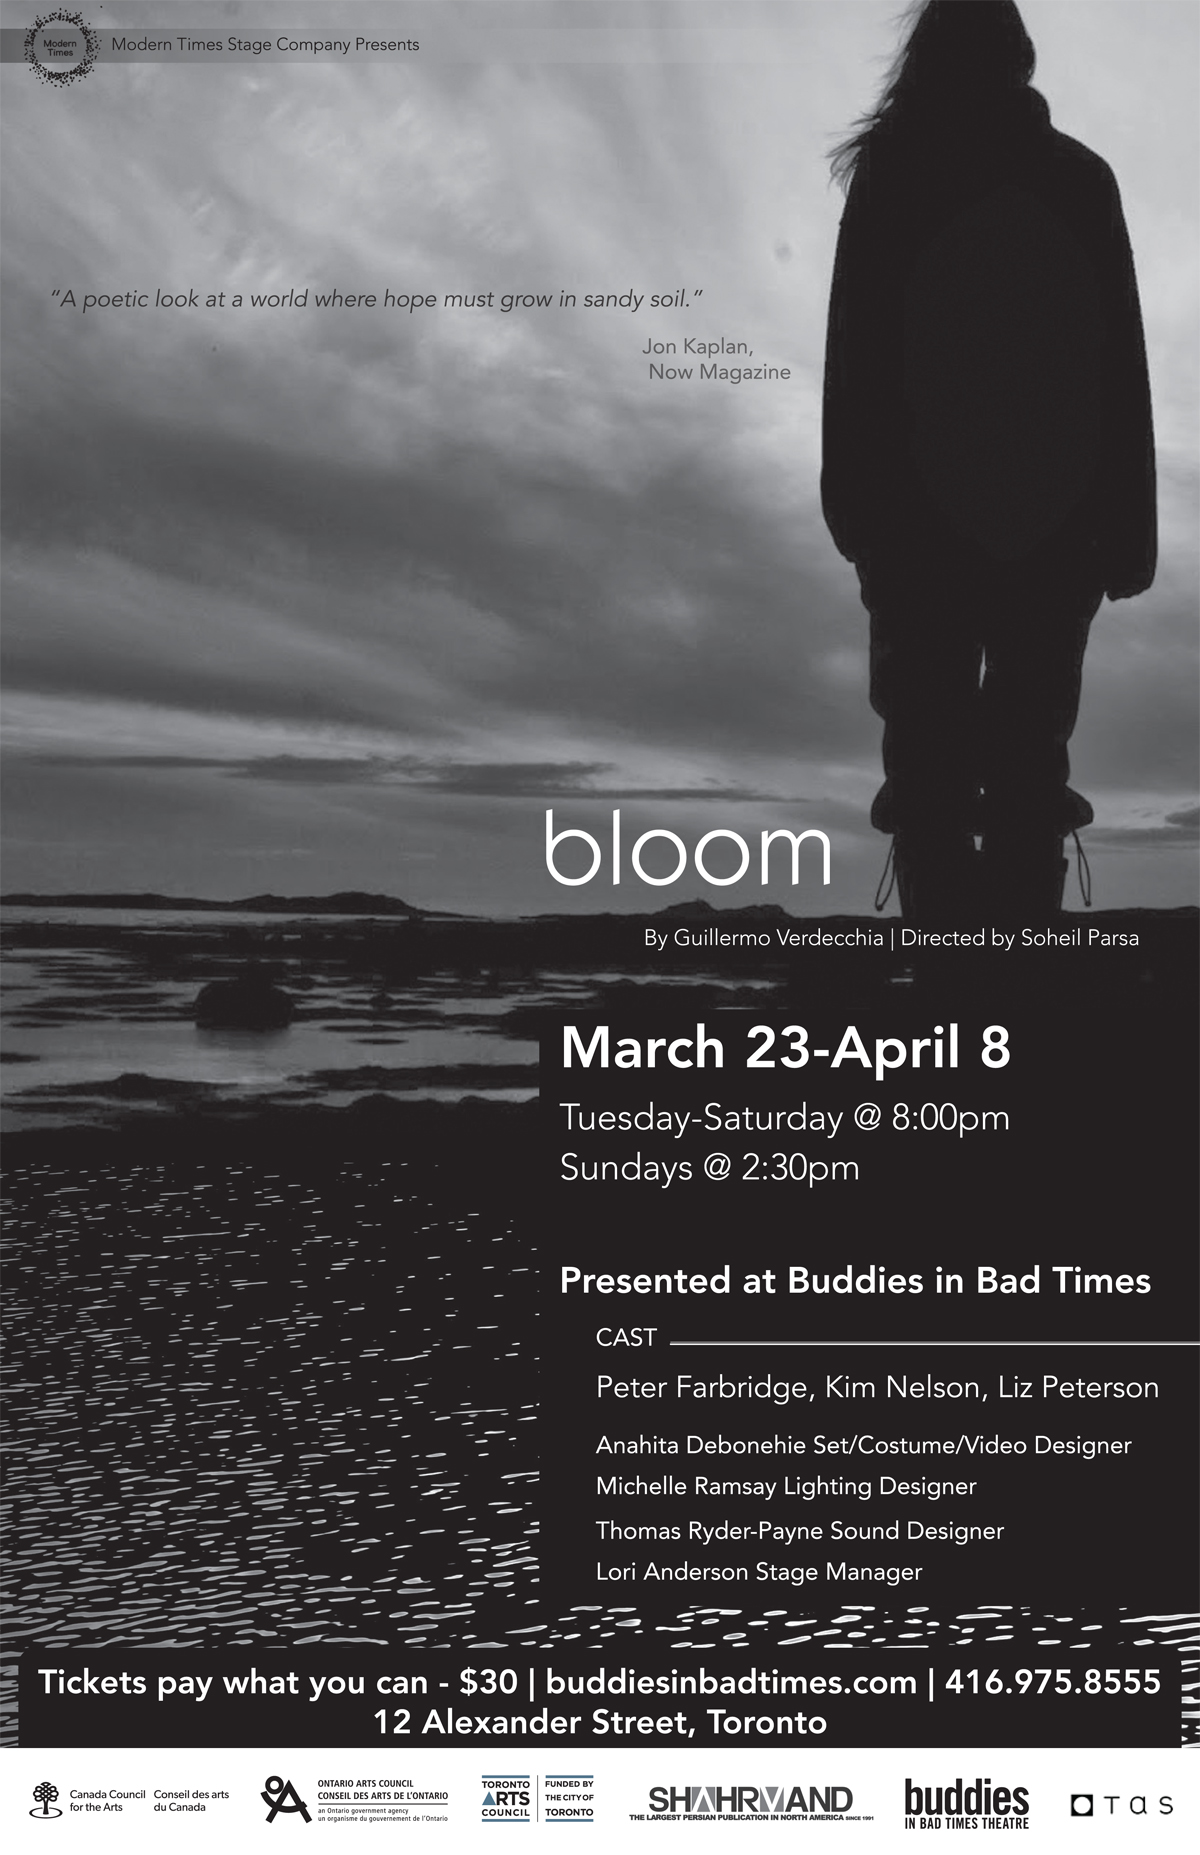 bloom-poster 11x17-FOR-REVIEW